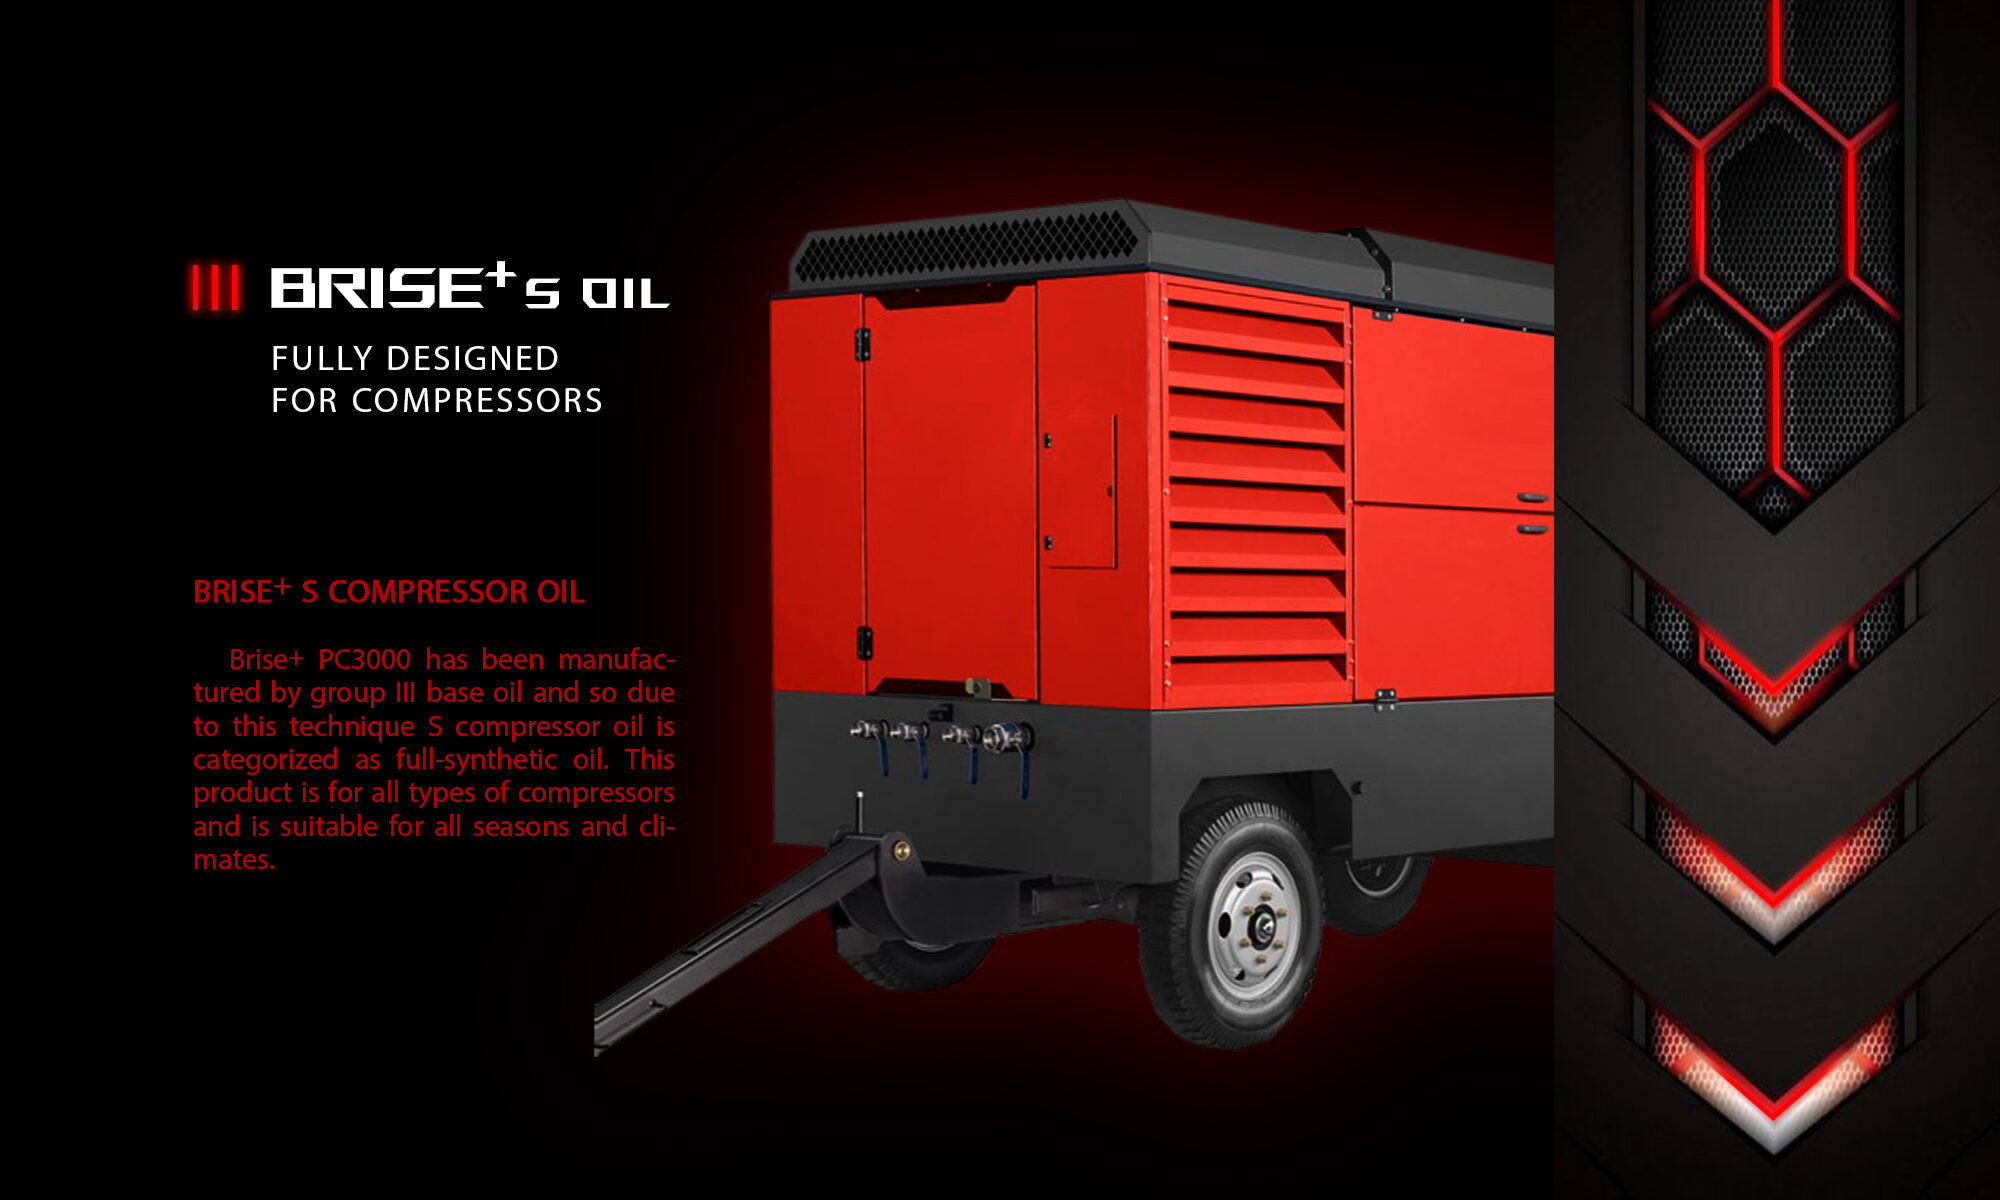 RED AIR COMPRESSOR WHICH USE BRISE PLUS ENGINE OIL